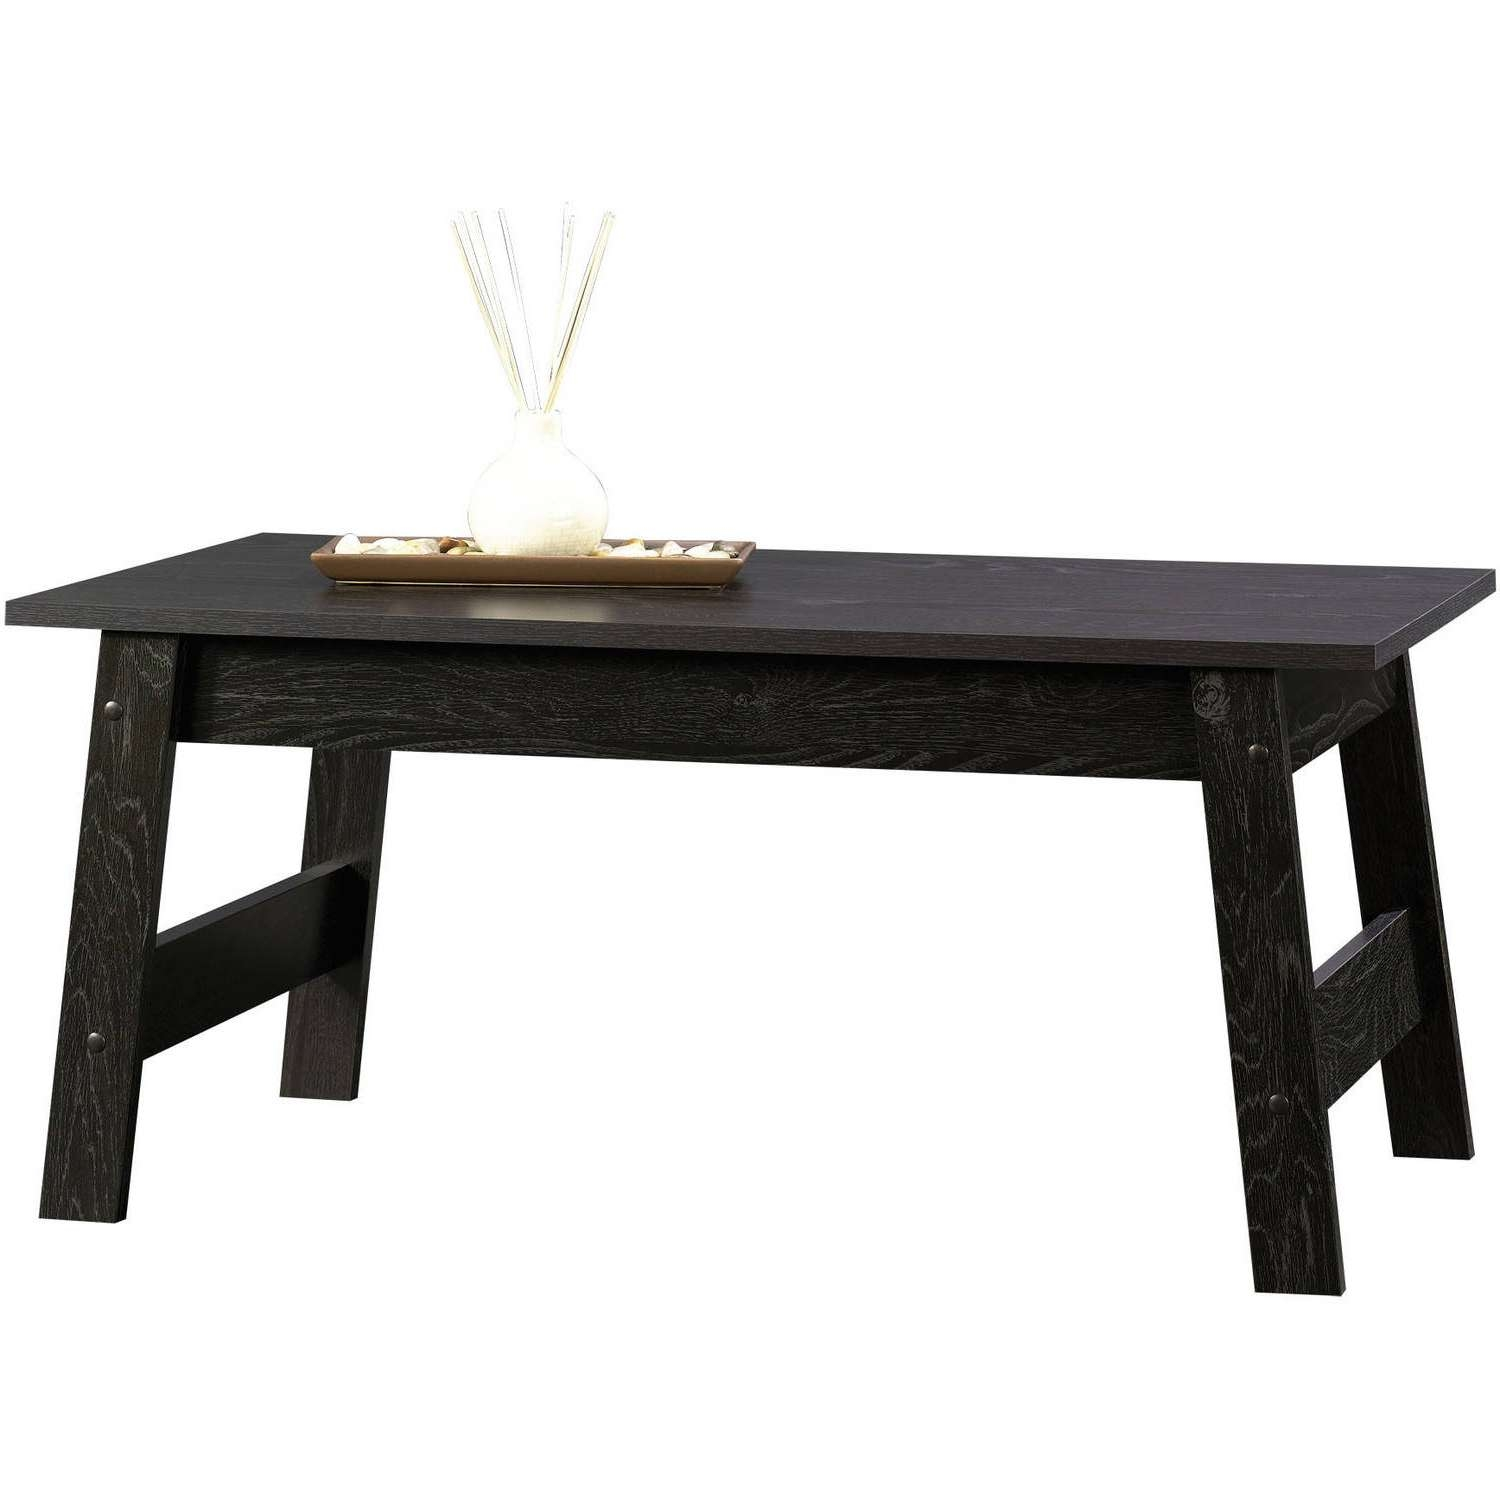 Sauder Beginnings Collection Coffee Table, Black – Walmart For Popular White And Black Coffee Tables (View 13 of 20)